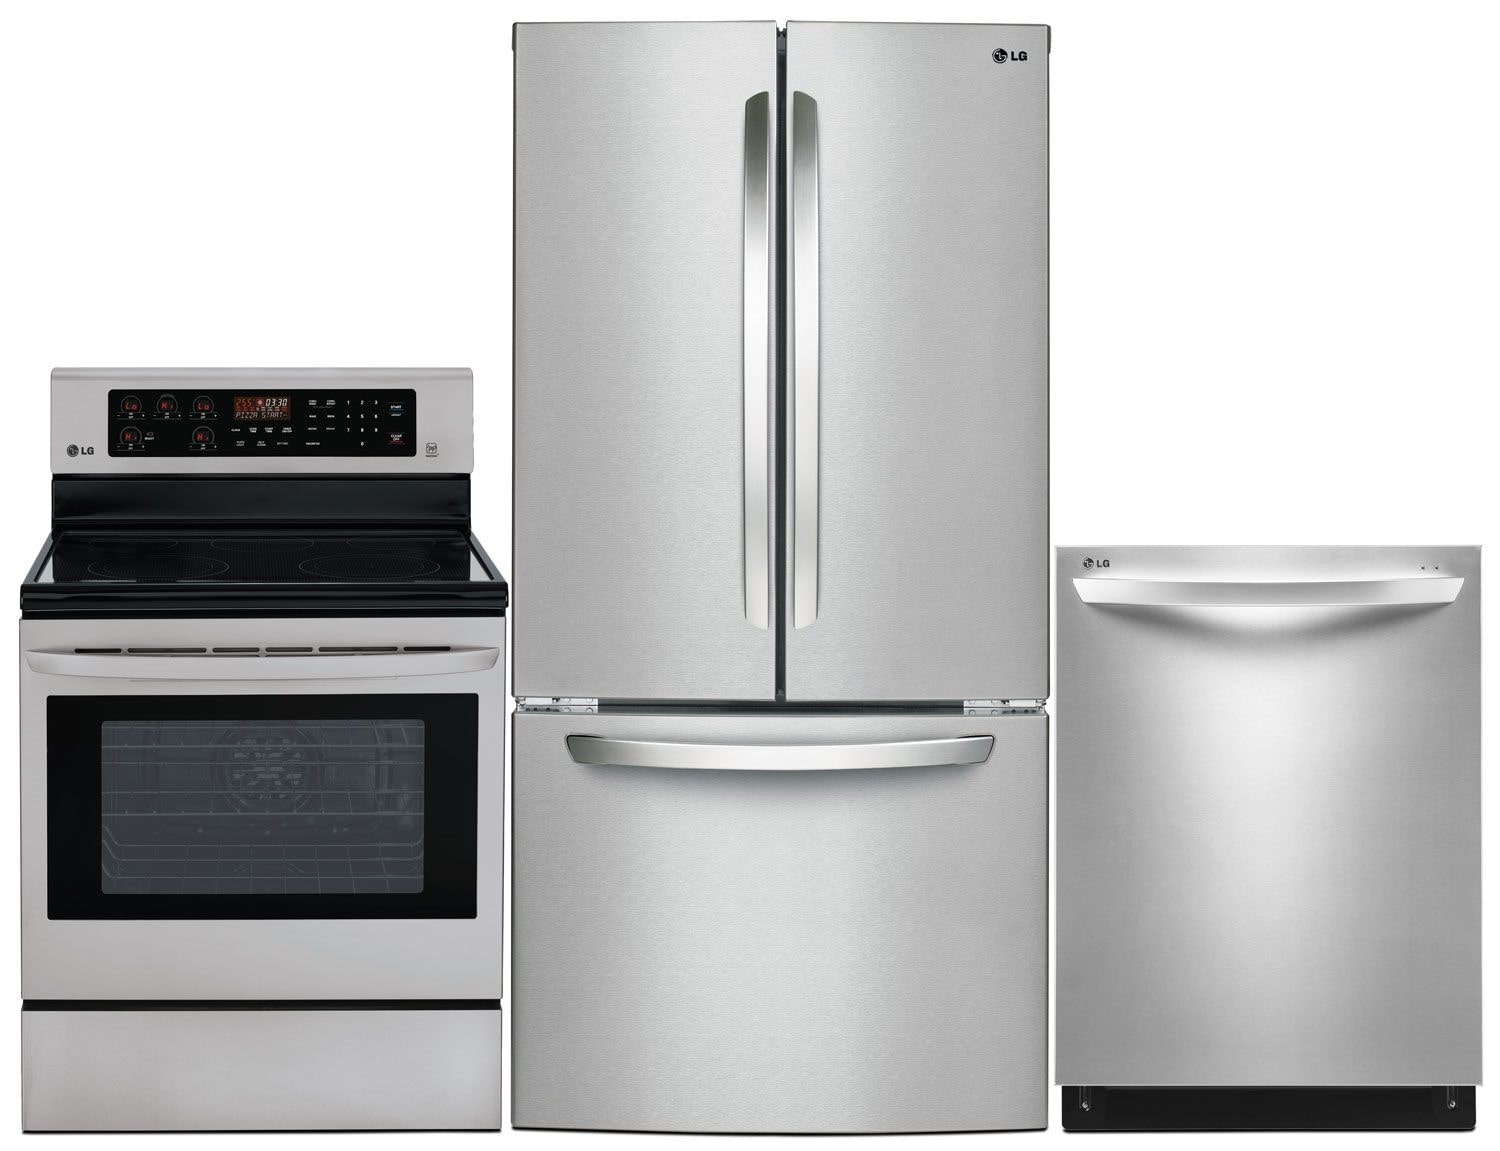 LG 24 Cu. Ft. Refrigerator, 6.3 Cu. Ft. Electric Range and Built-In Dishwasher